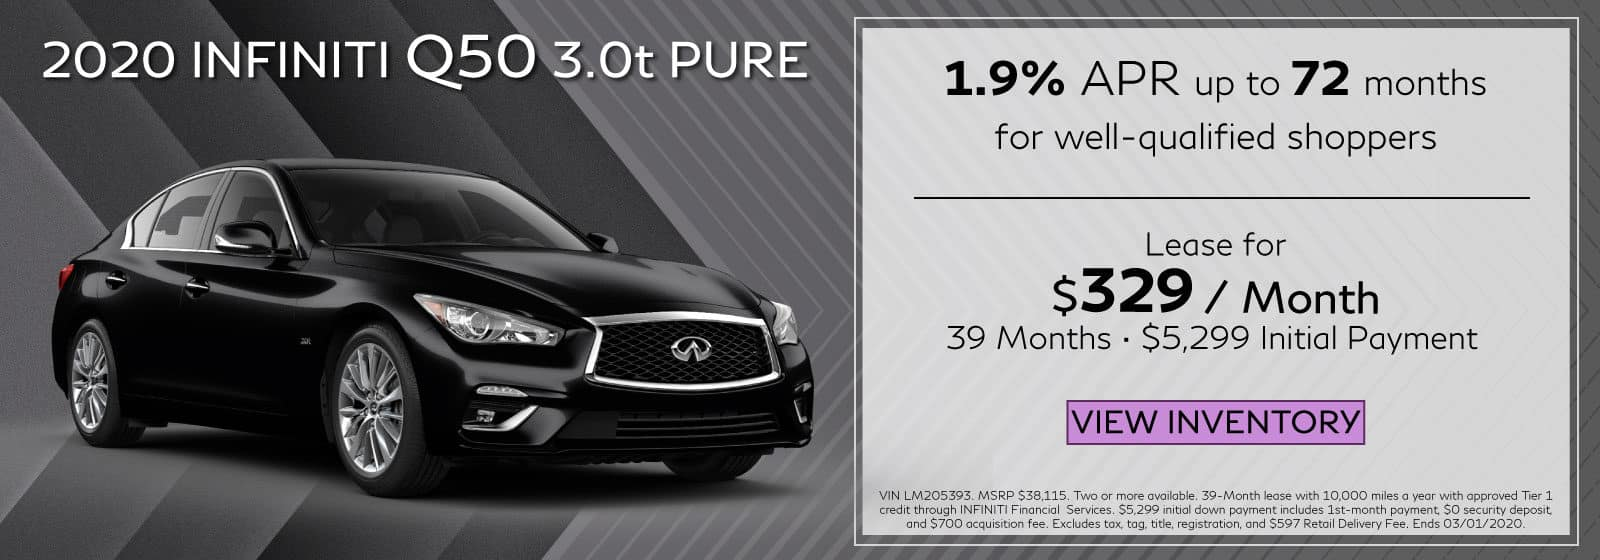 2020 Q50 3.0t LUXE. $329 a month for 39 months. $5,299 initial payment. OR 1.9% APR up to 72 months. Black Q50 on black and gray abstract background.